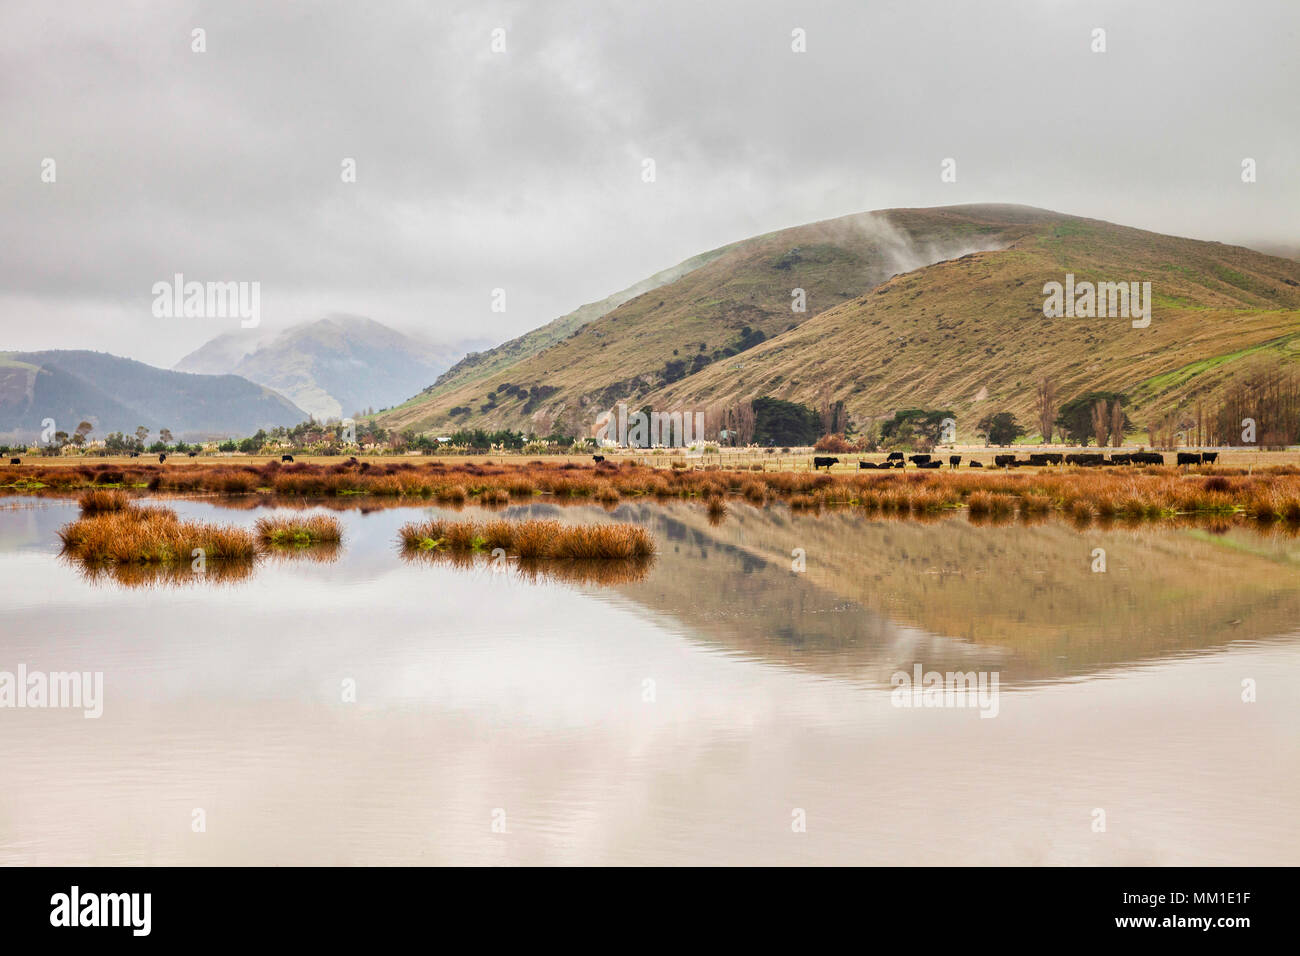 A foggy morning over the farms, lakes and hills of Canterbury, New Zealand. - Stock Image